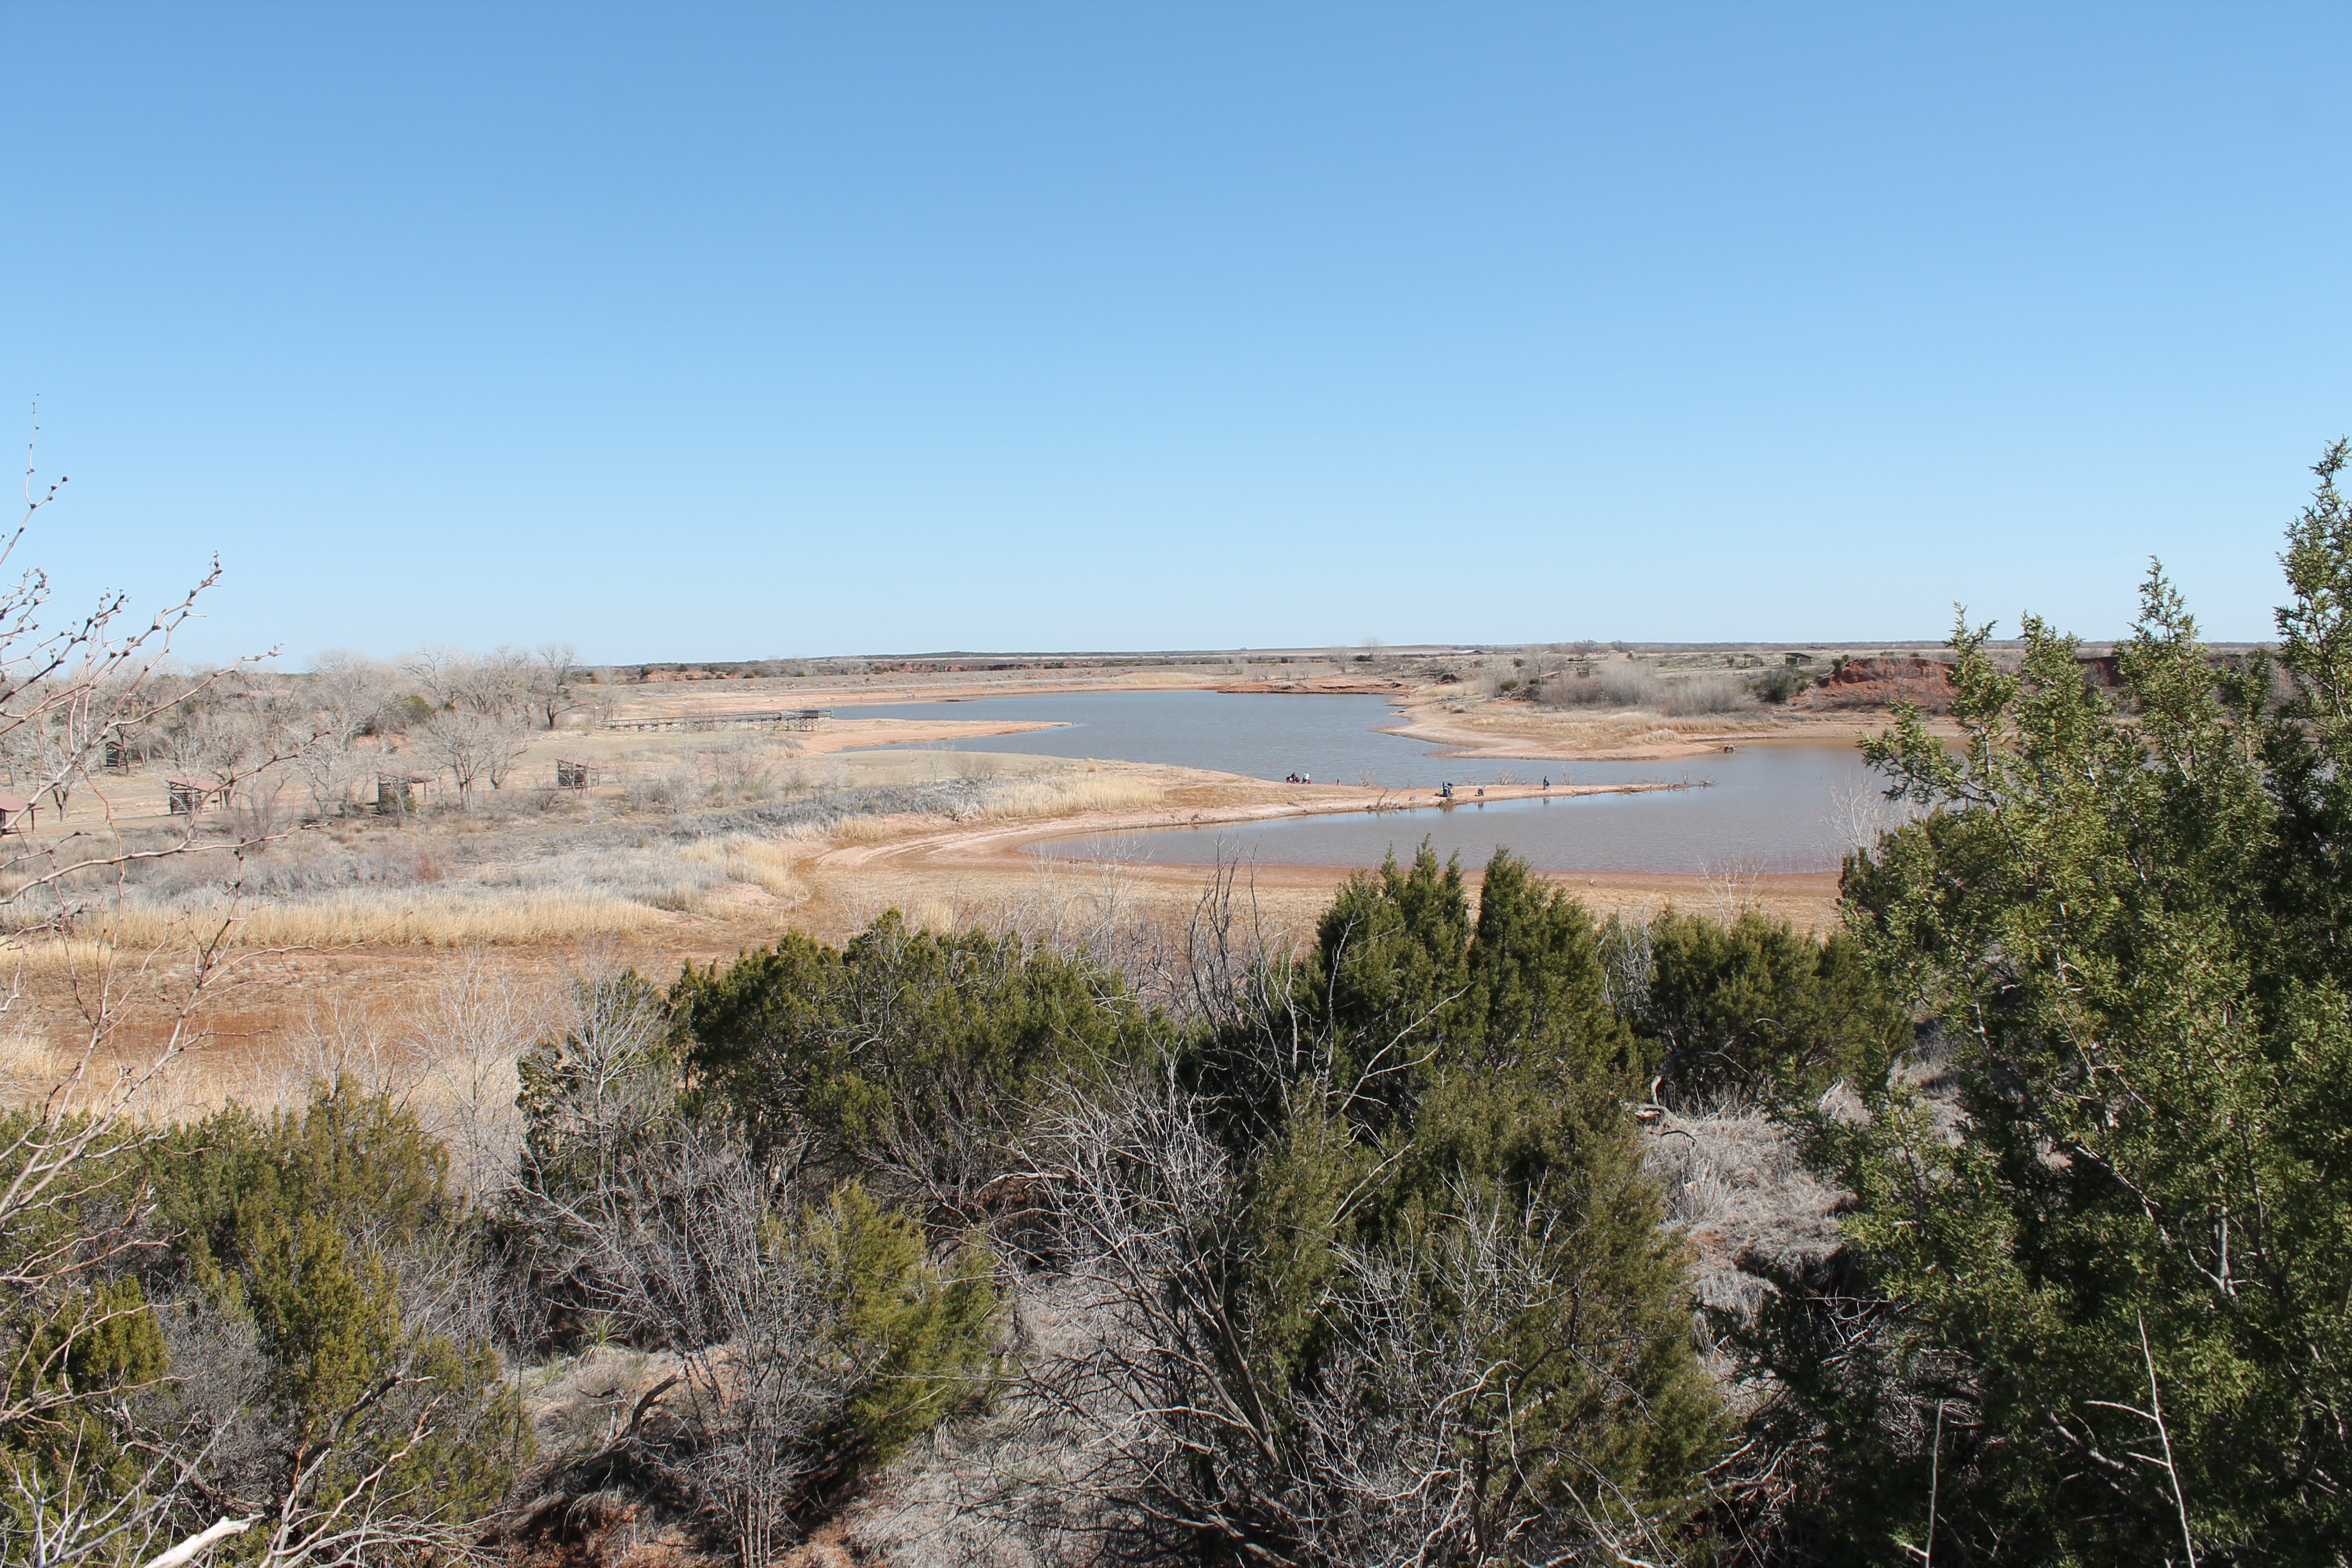 caprock dating View oil production, wells drilled, and more for wells and leases operated by caprock exploration, inc.